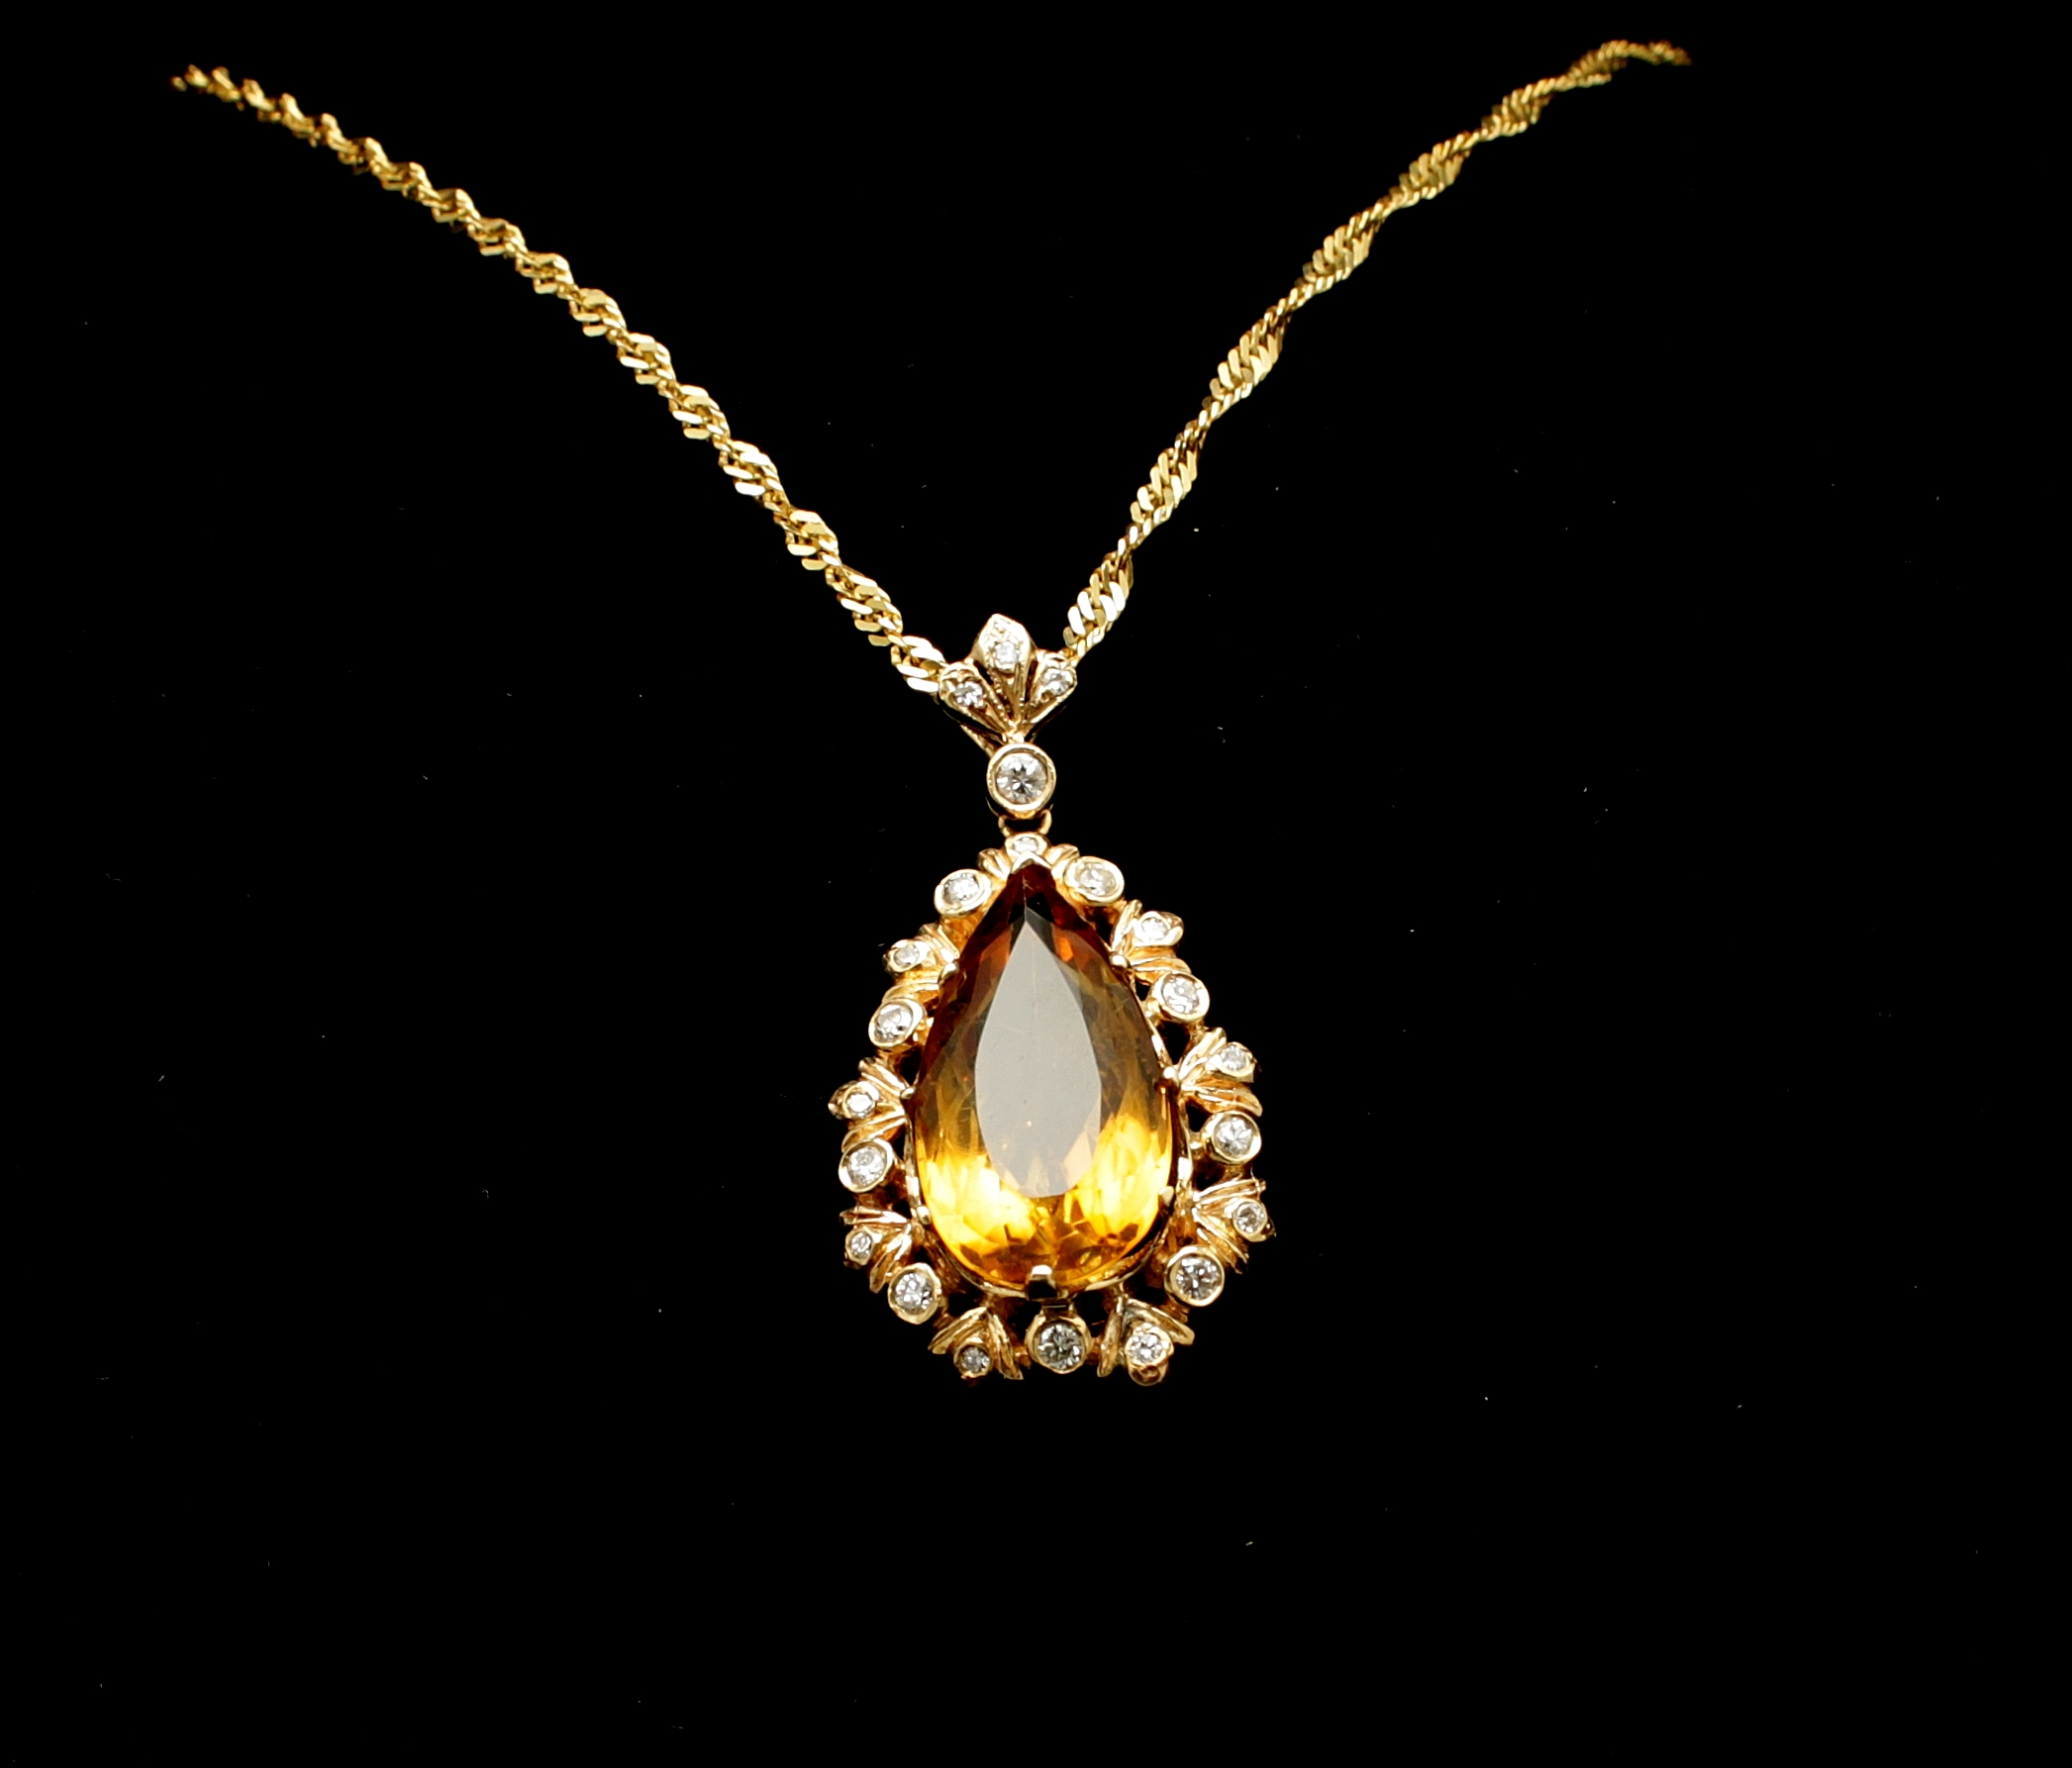 Vintage Topaz Diamond Necklace